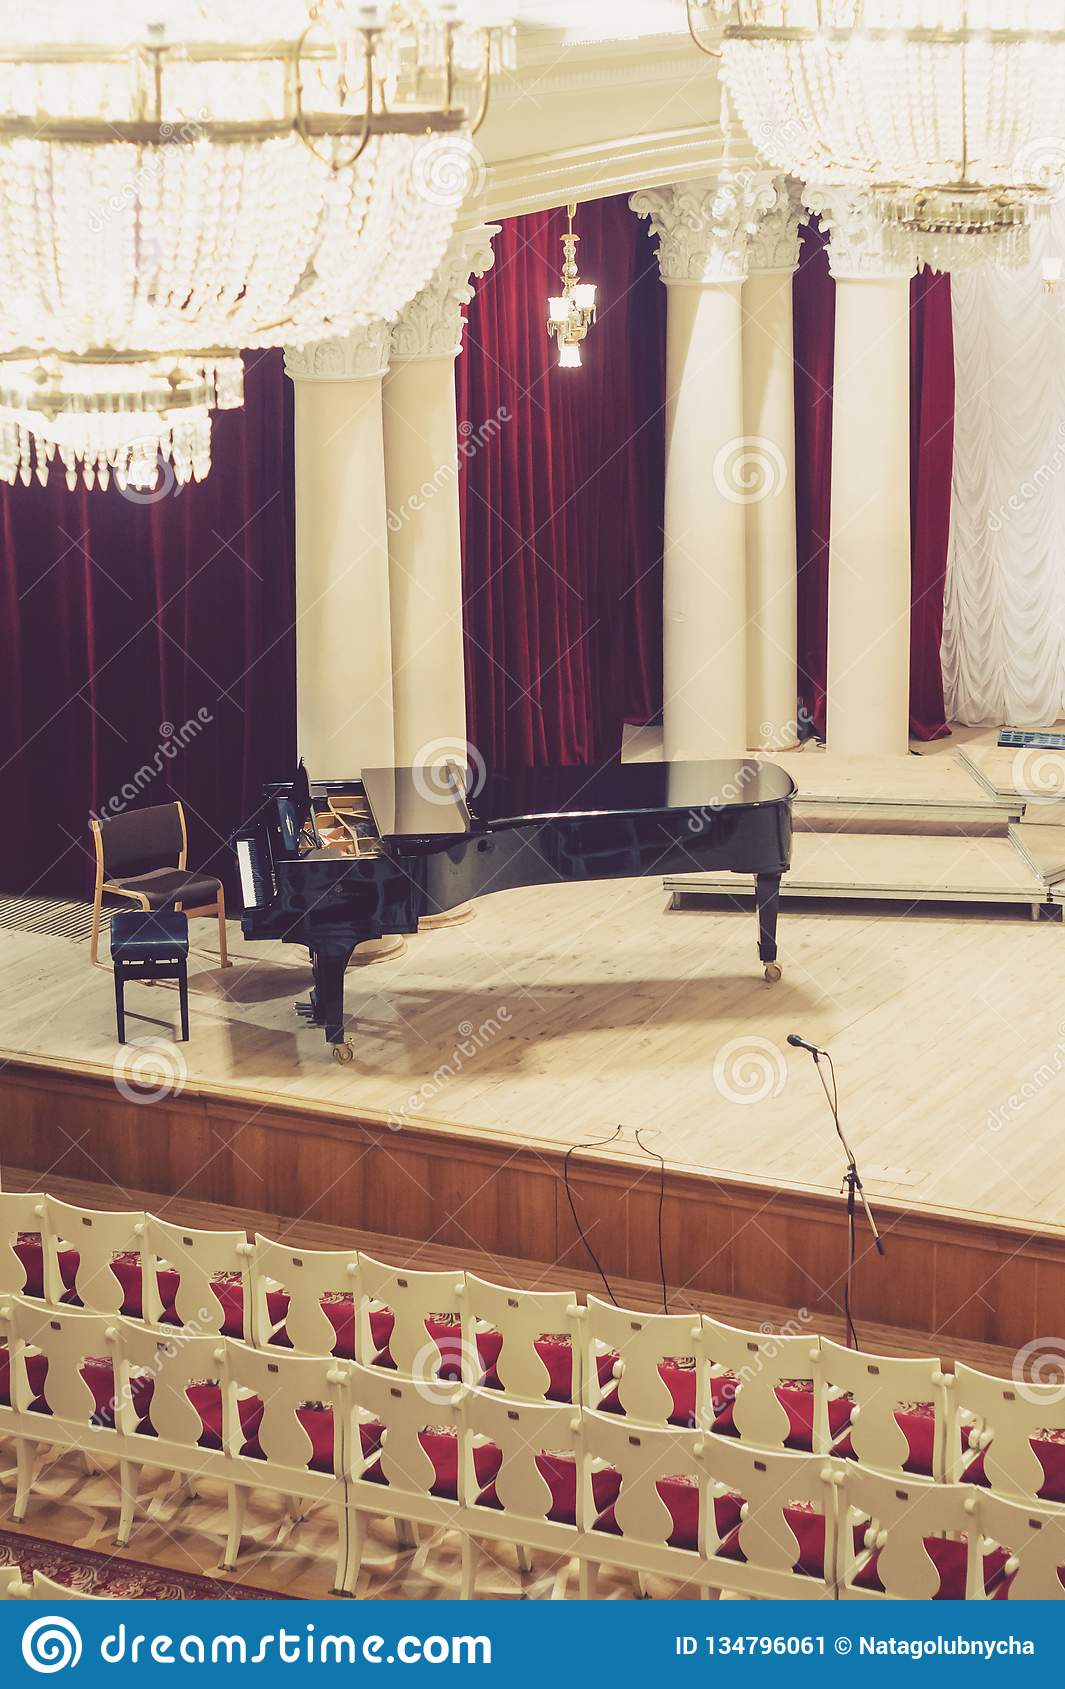 Piano on scene and empty chairs in the concert hall